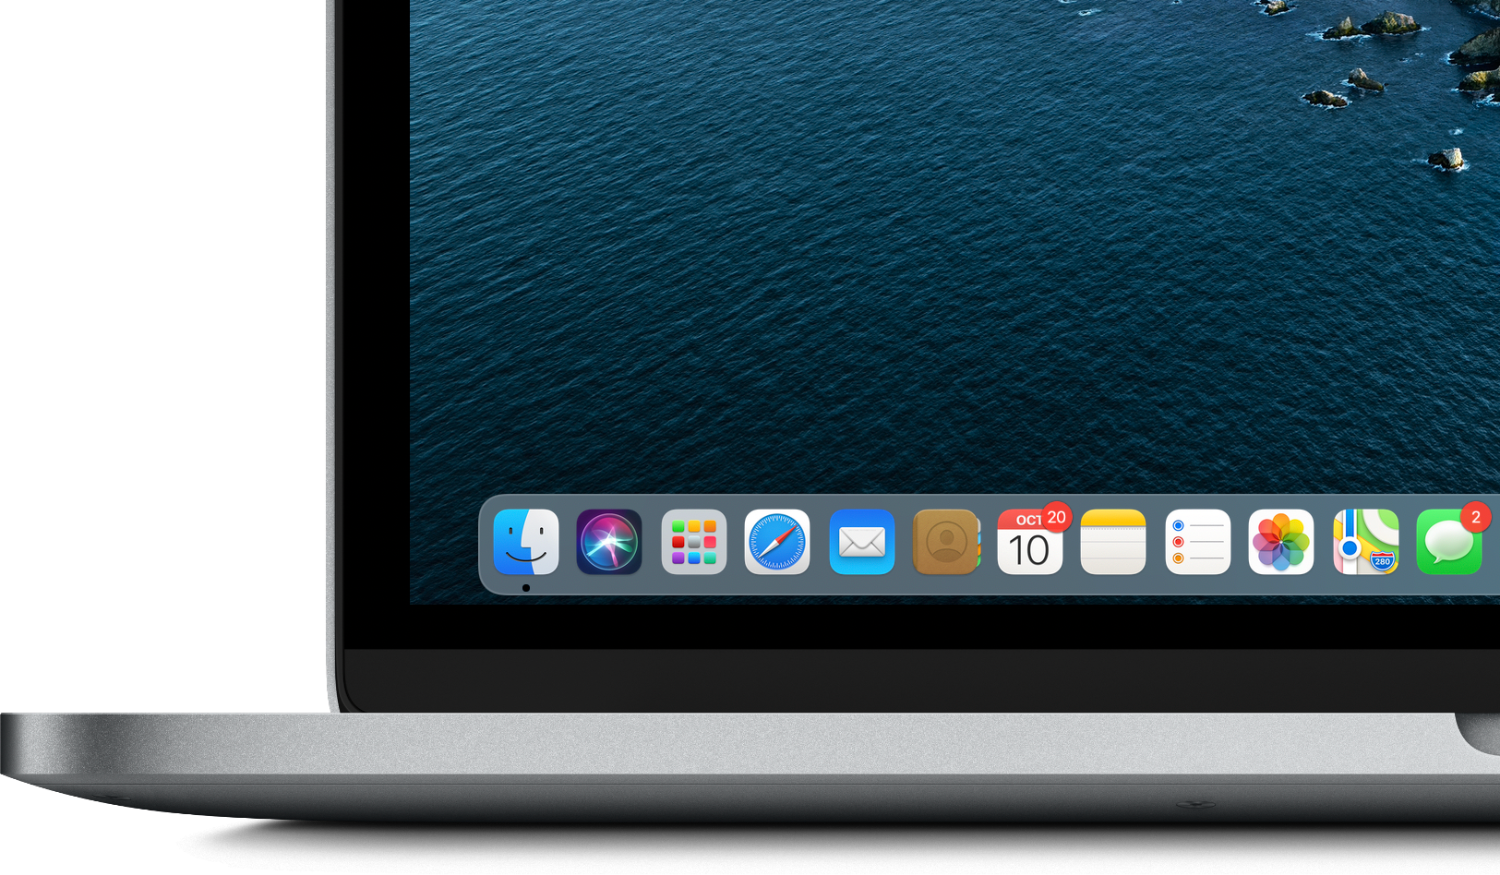 Big Sur's floating Dock and iPad-inspired app icons.